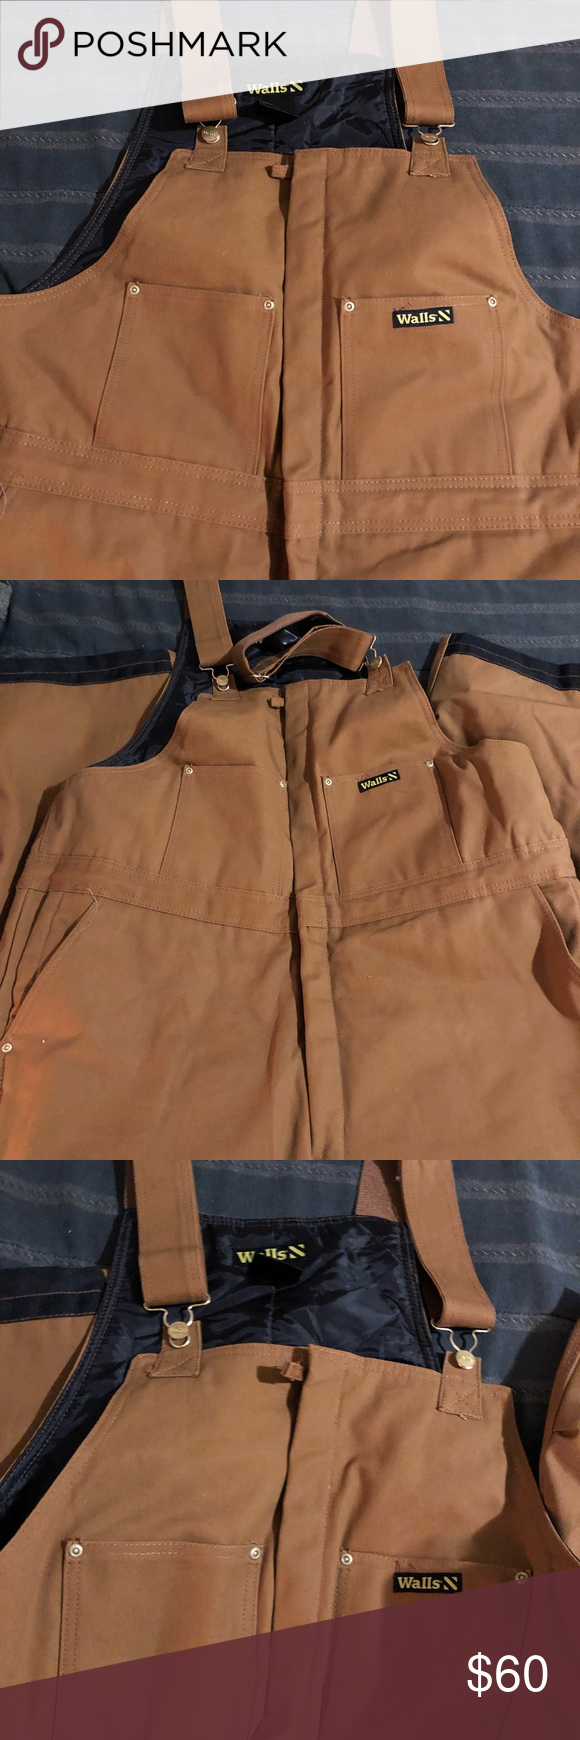 walls extreme weather insulated bib overalls 2xlr nwot on walls workwear insulated coveralls id=16545